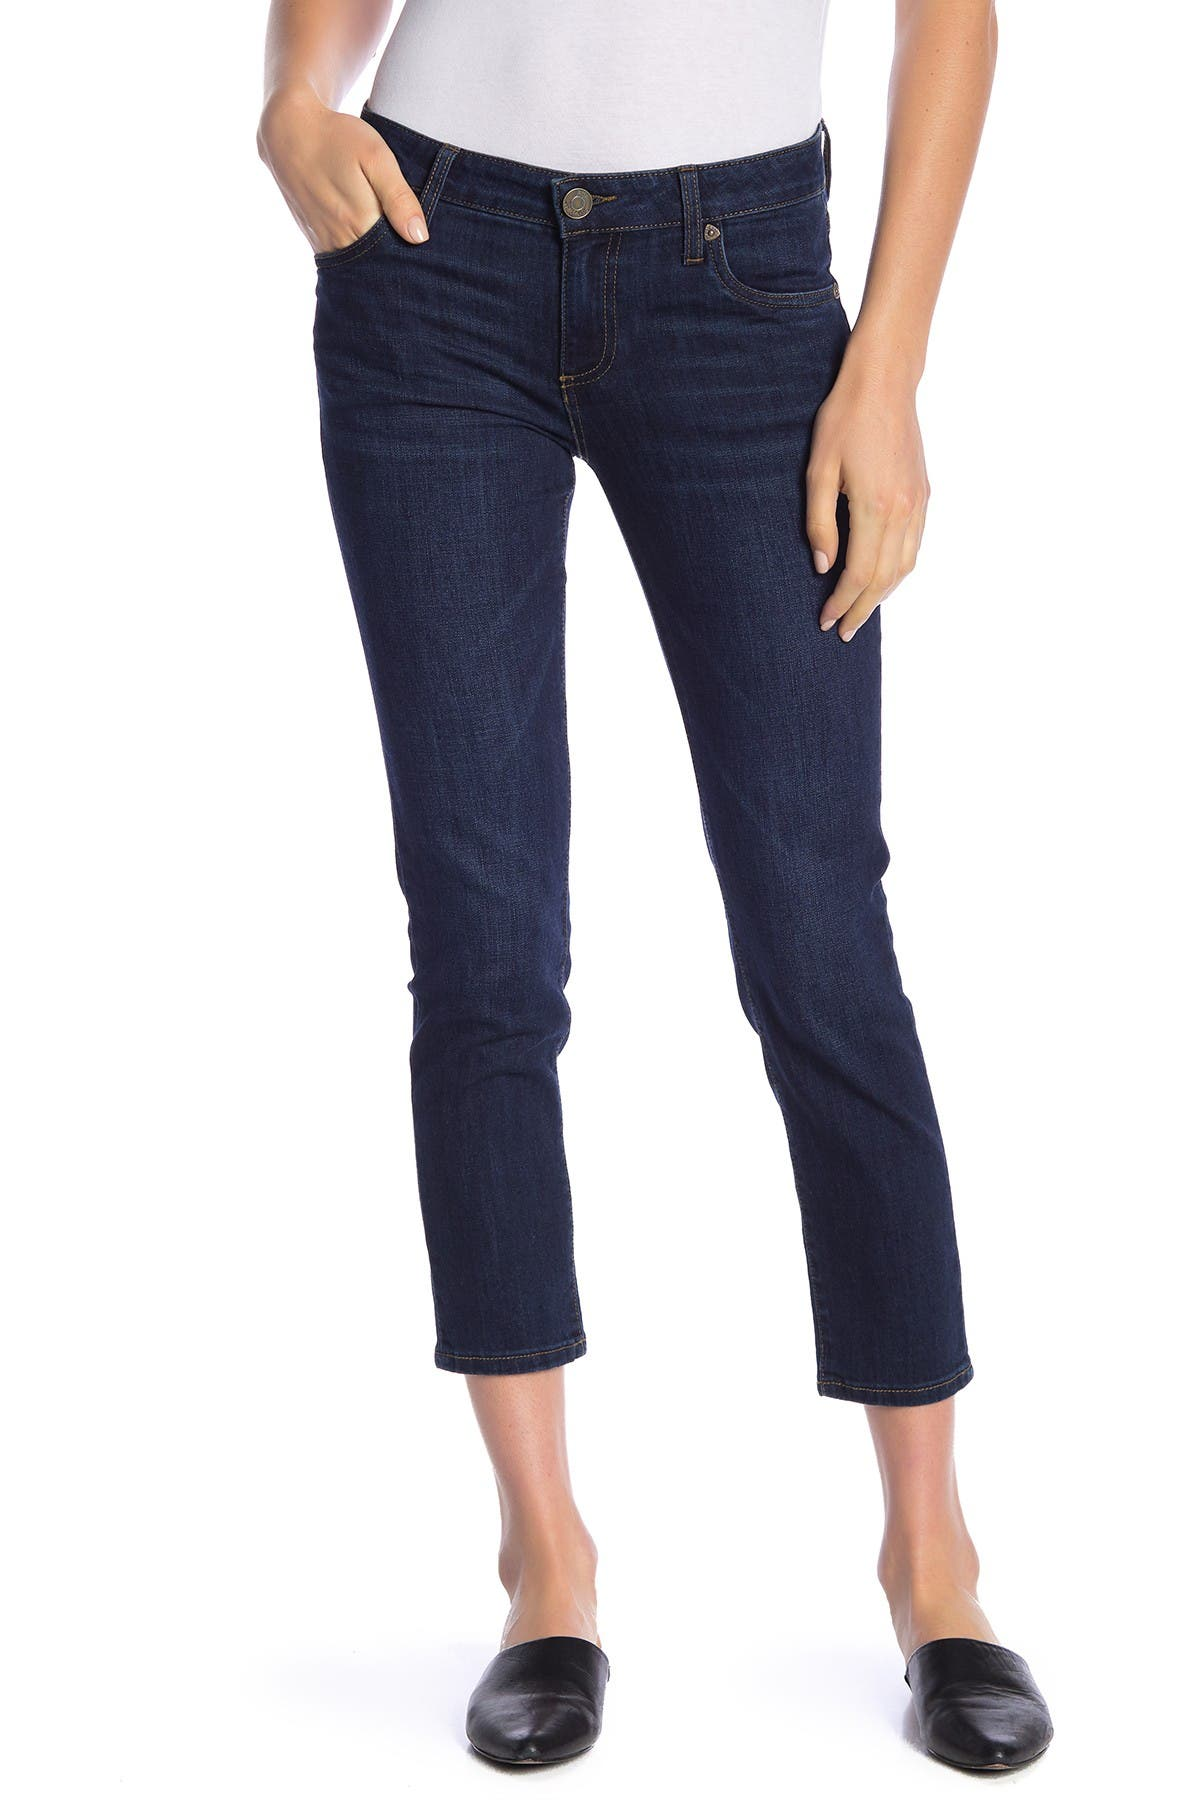 Image of KUT from the Kloth Katy Ankle Boyfriend Jeans